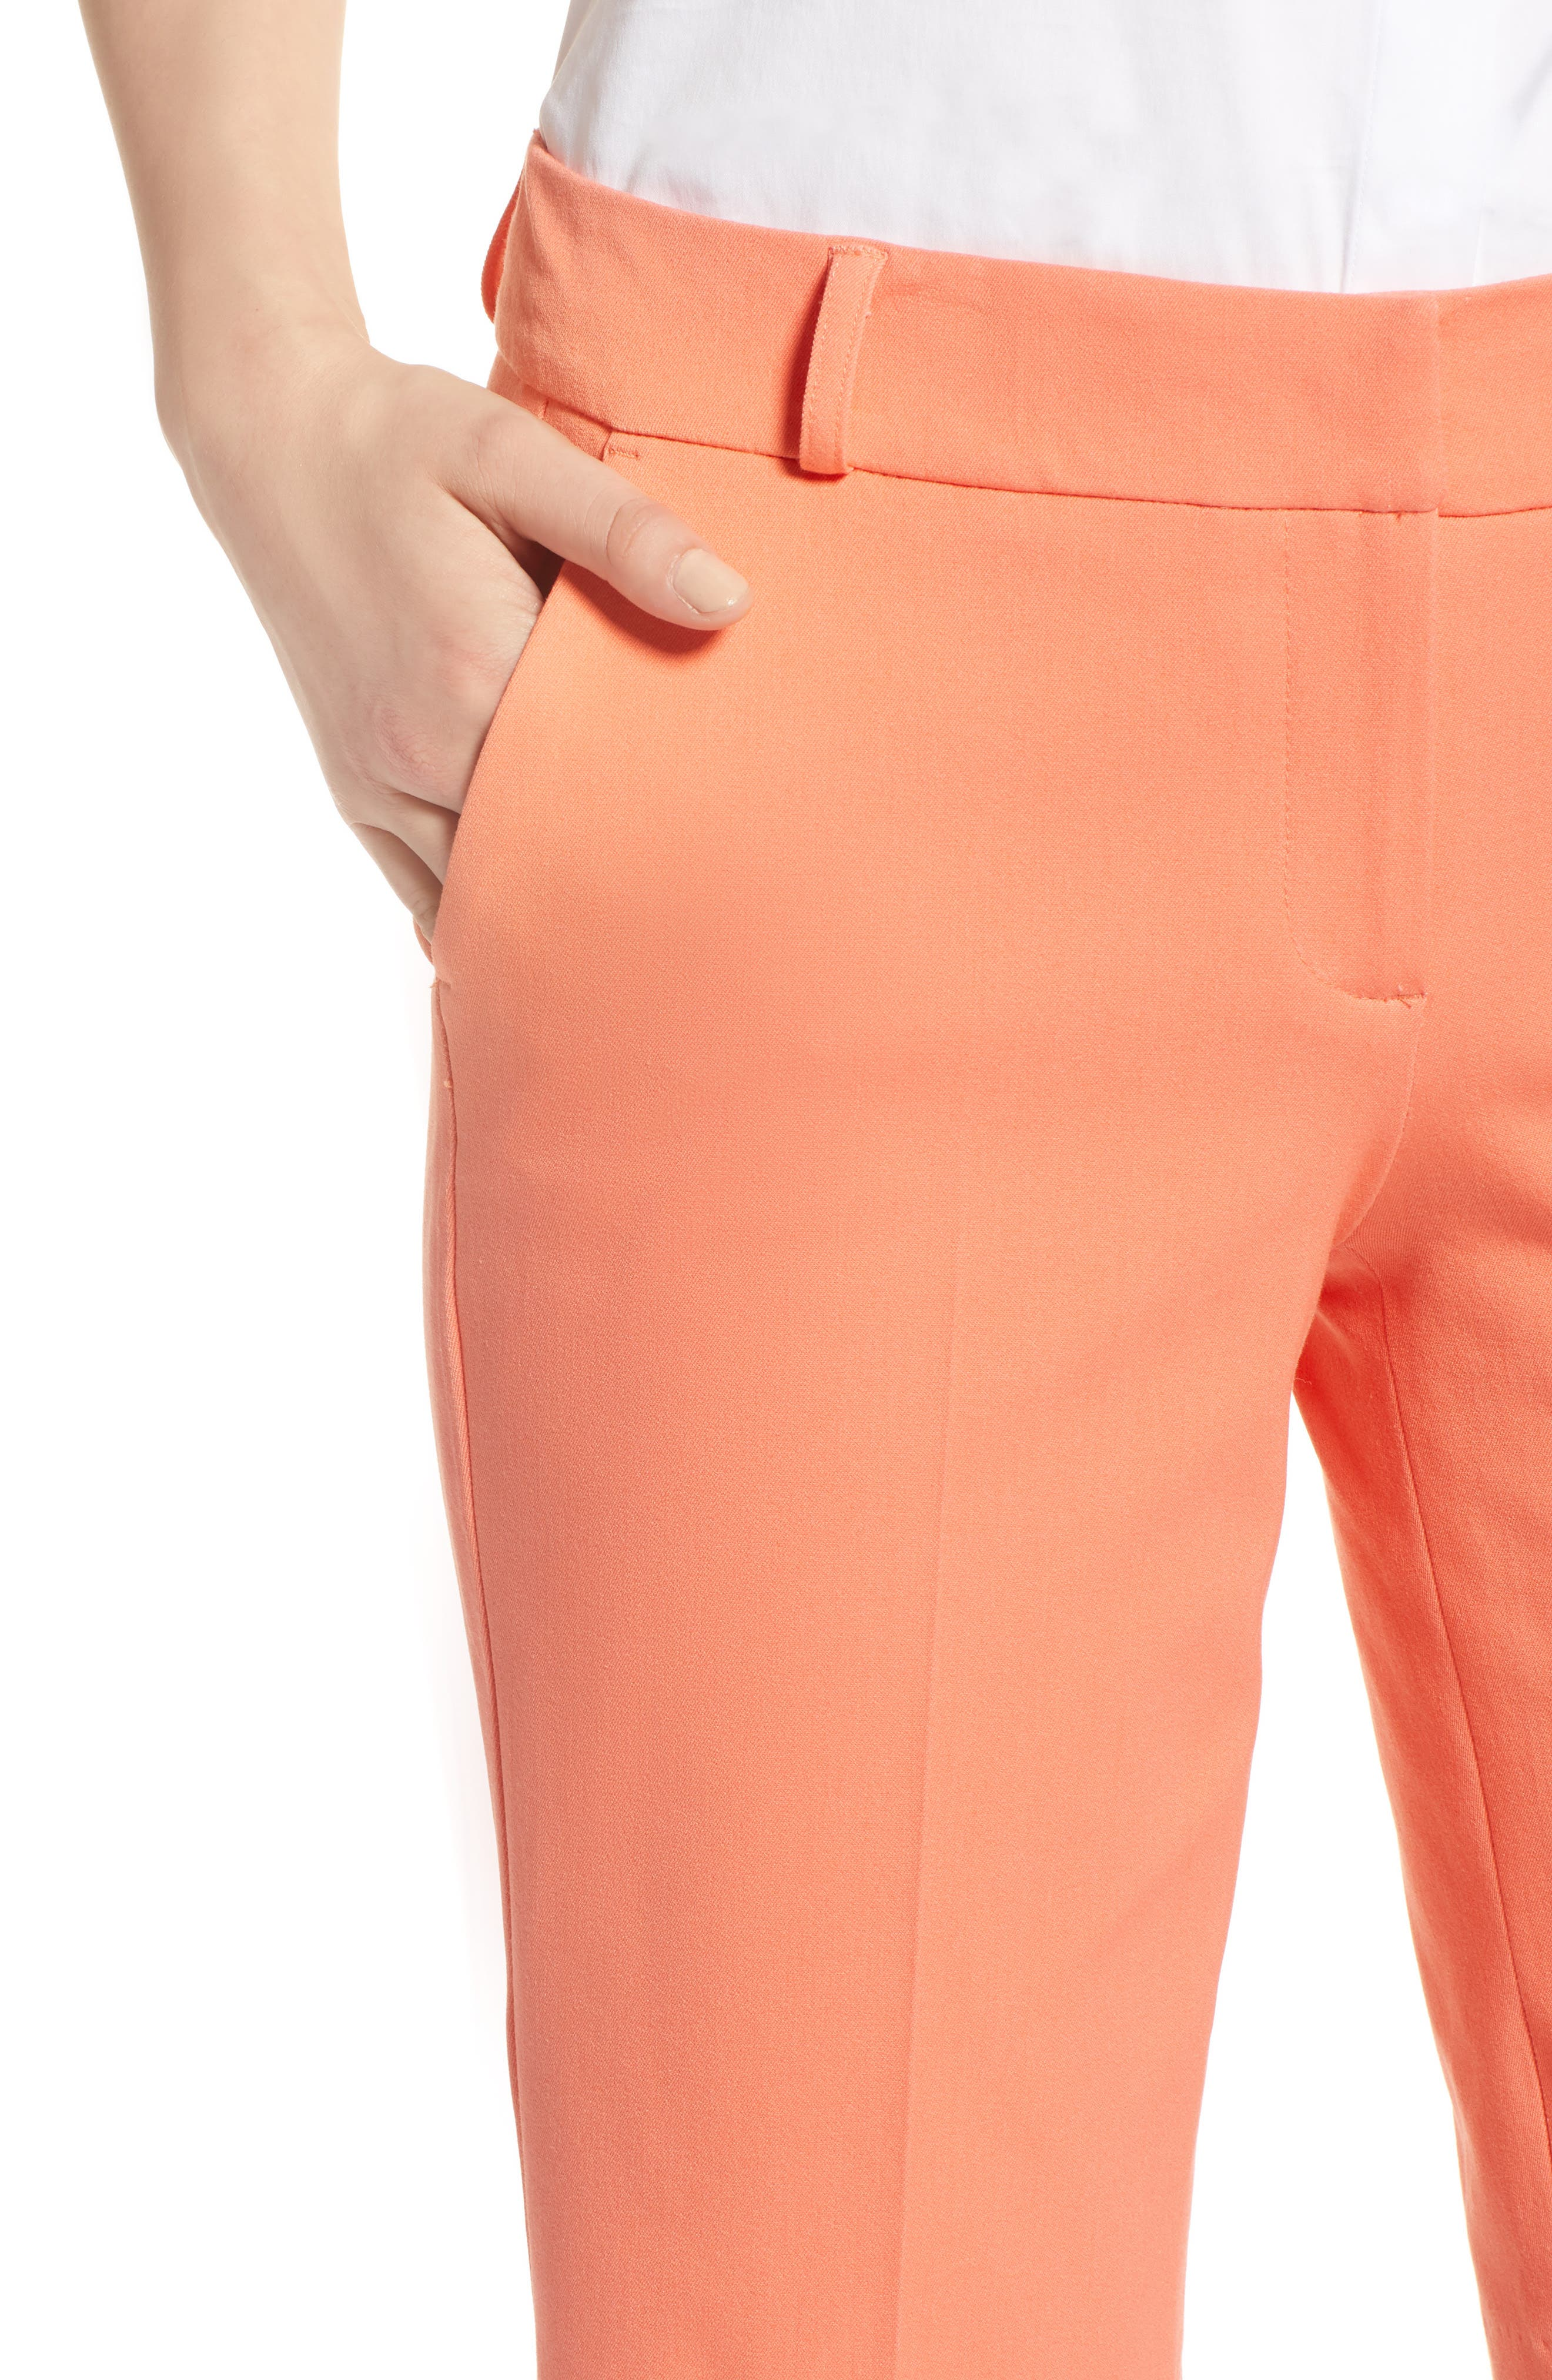 Stretch Bermuda Shorts,                             Alternate thumbnail 4, color,                             Coral Ocean